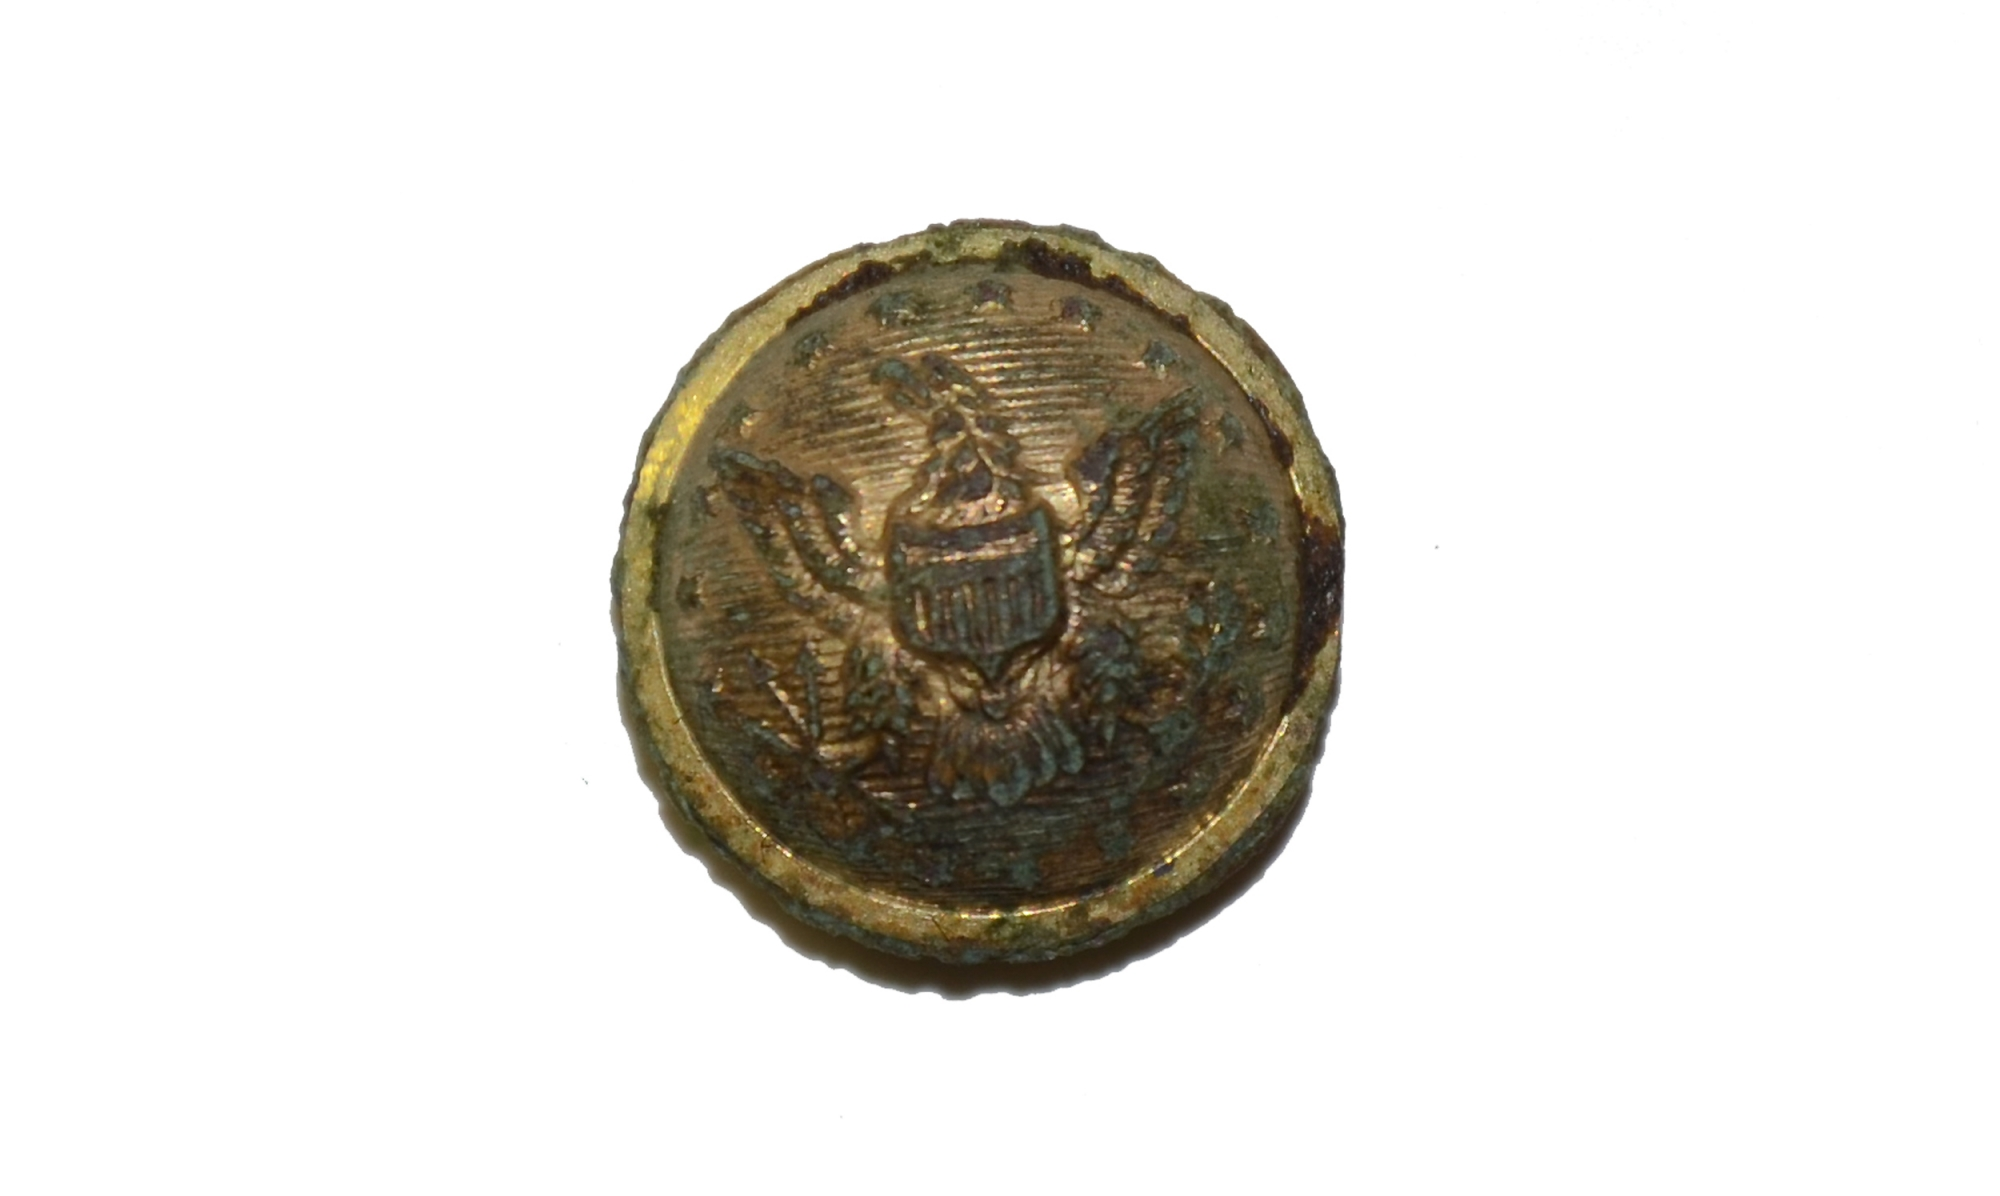 US STAFF OFFICERS BUTTON RECOVERED IN THE WHEATFIELD, GETTYSBURG